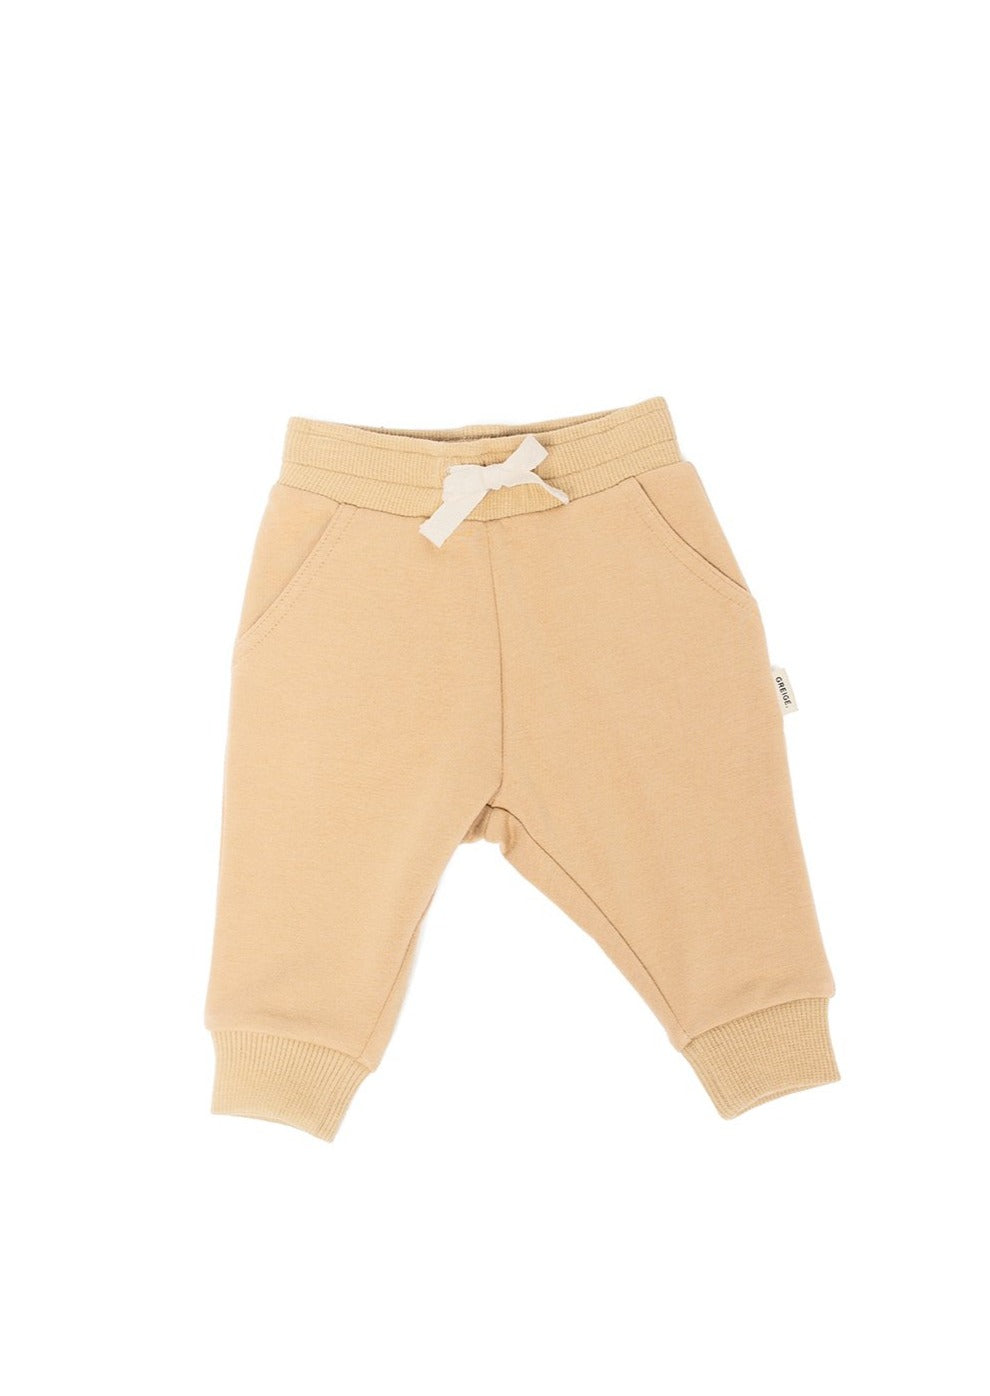 Greige Bamboo Fleece Sweatpants in Tan